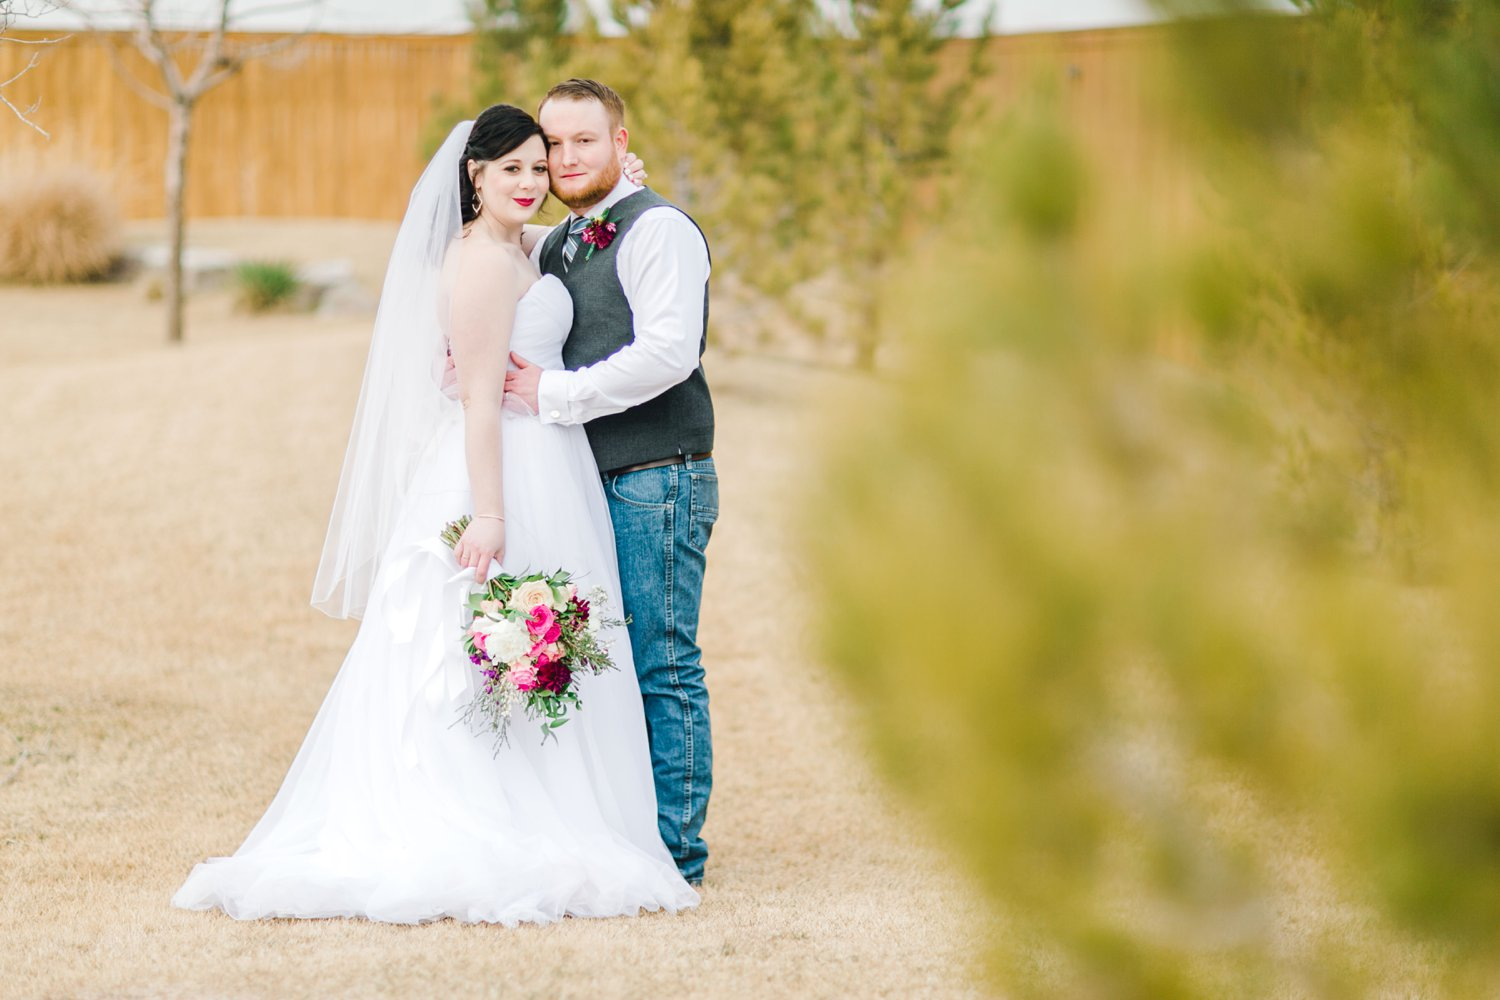 Autumn-Oaks-Events-Morgan-Andy-Lane-Wedding-Lubbock-Photography__0035.jpg